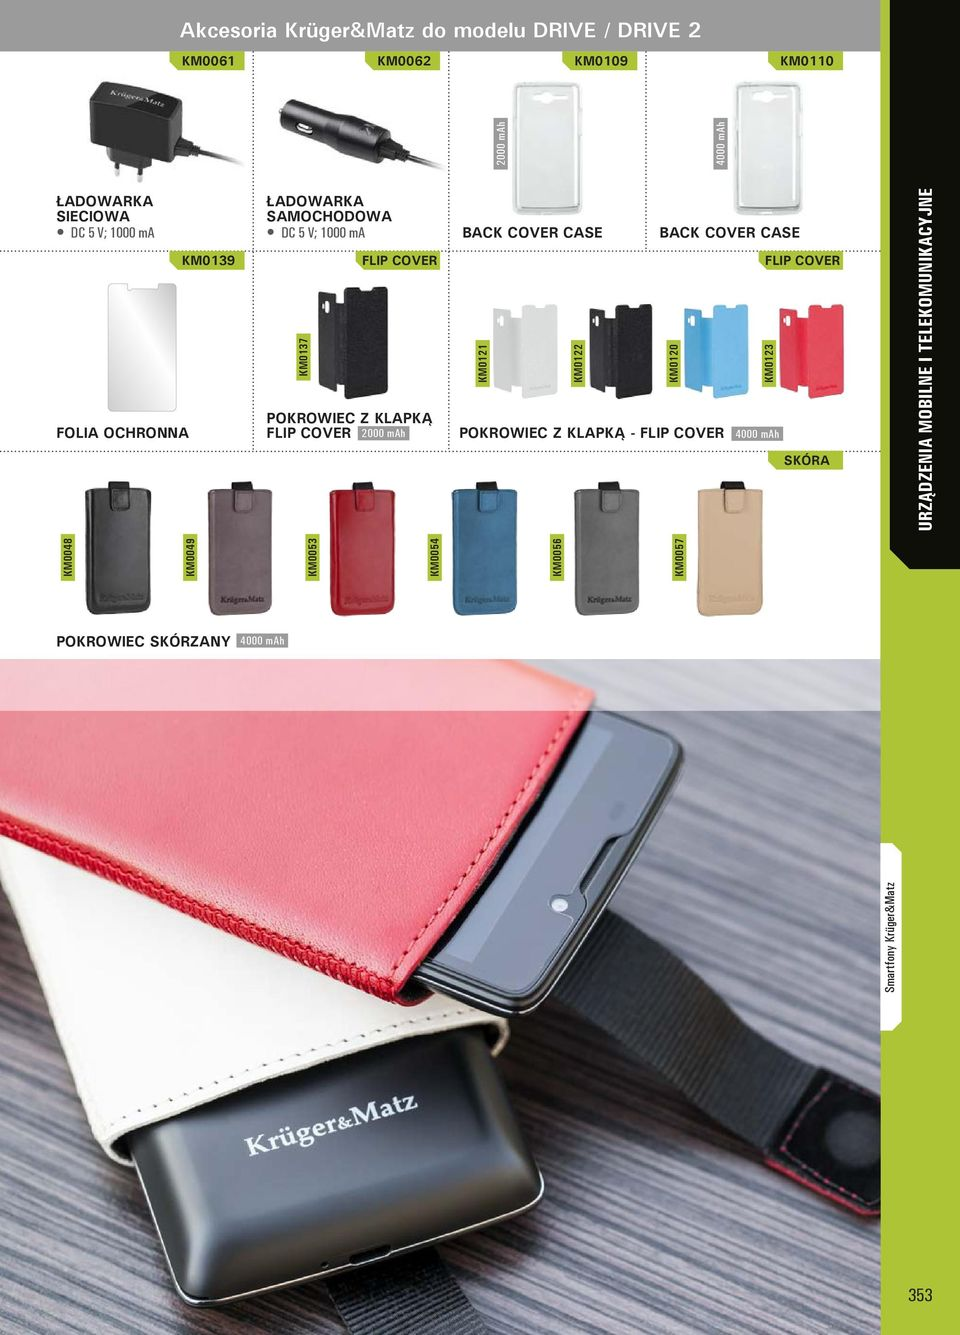 KLAPKĄ FLIP COVER 2000 mah BACK COVER CASE BACK COVER CASE FLIP COVER KM0121 KM0122 KM0120 KM0123